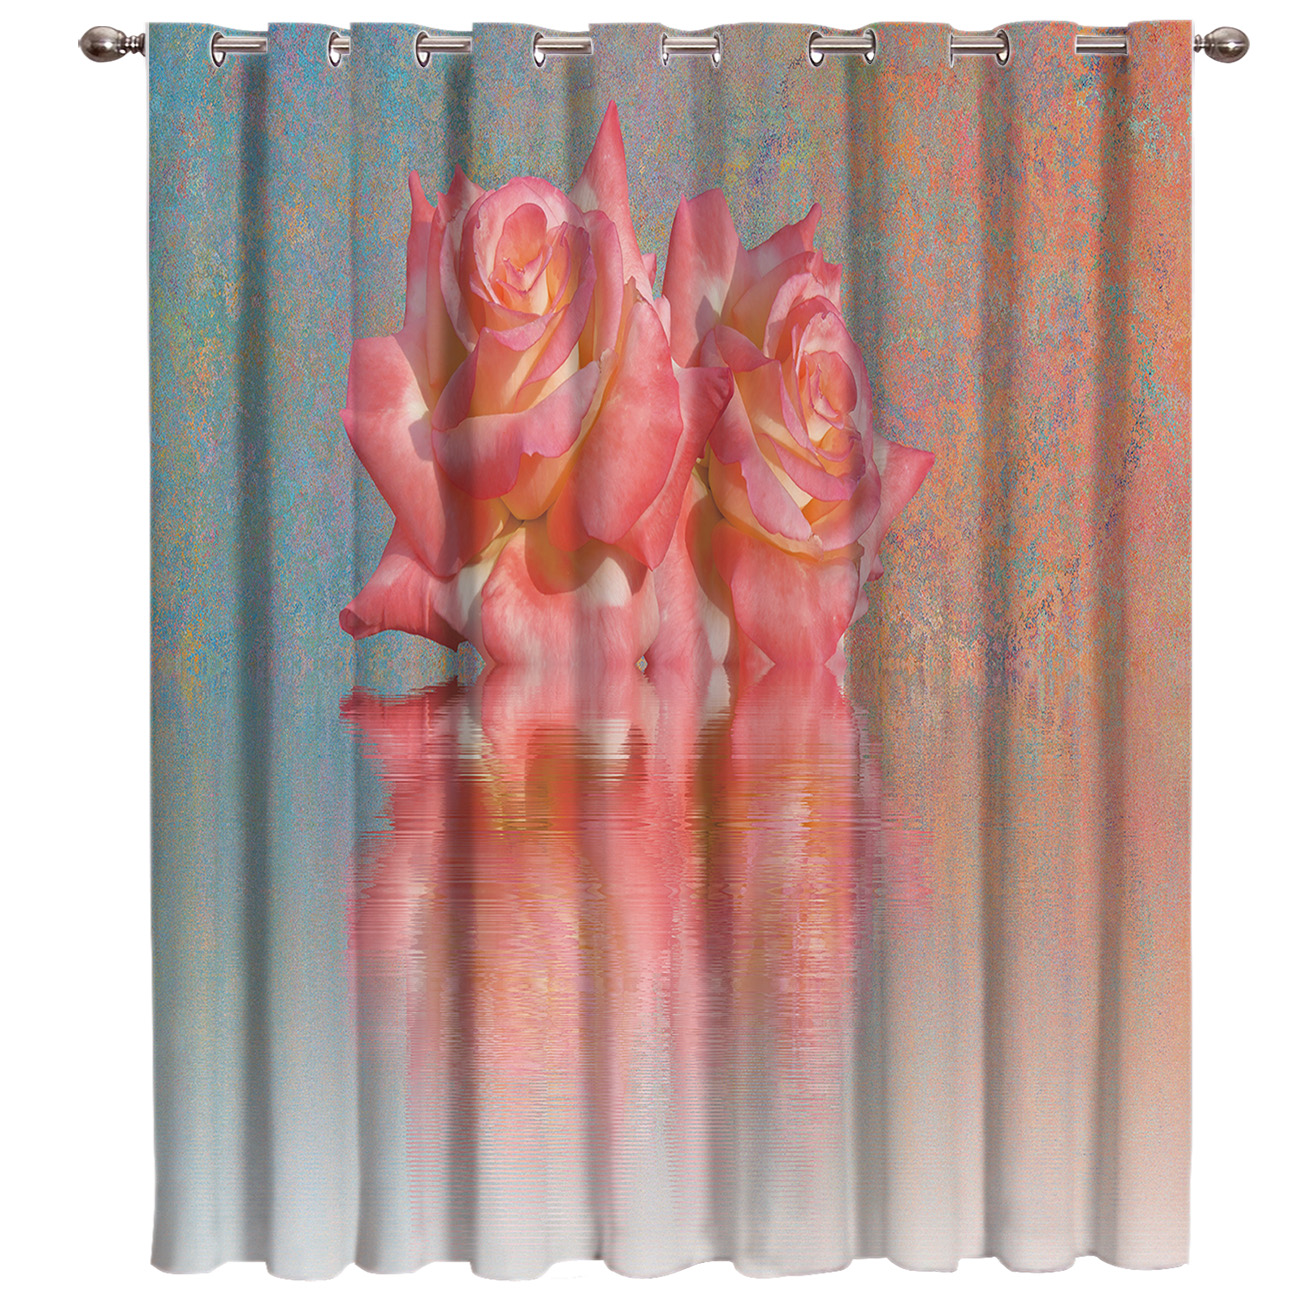 Vintage Pink Rose Oil Painting Window Curtains Dark Living Room Bathroom Blackout Bedroom Kitchen Outdoor Decor Curtain Panels